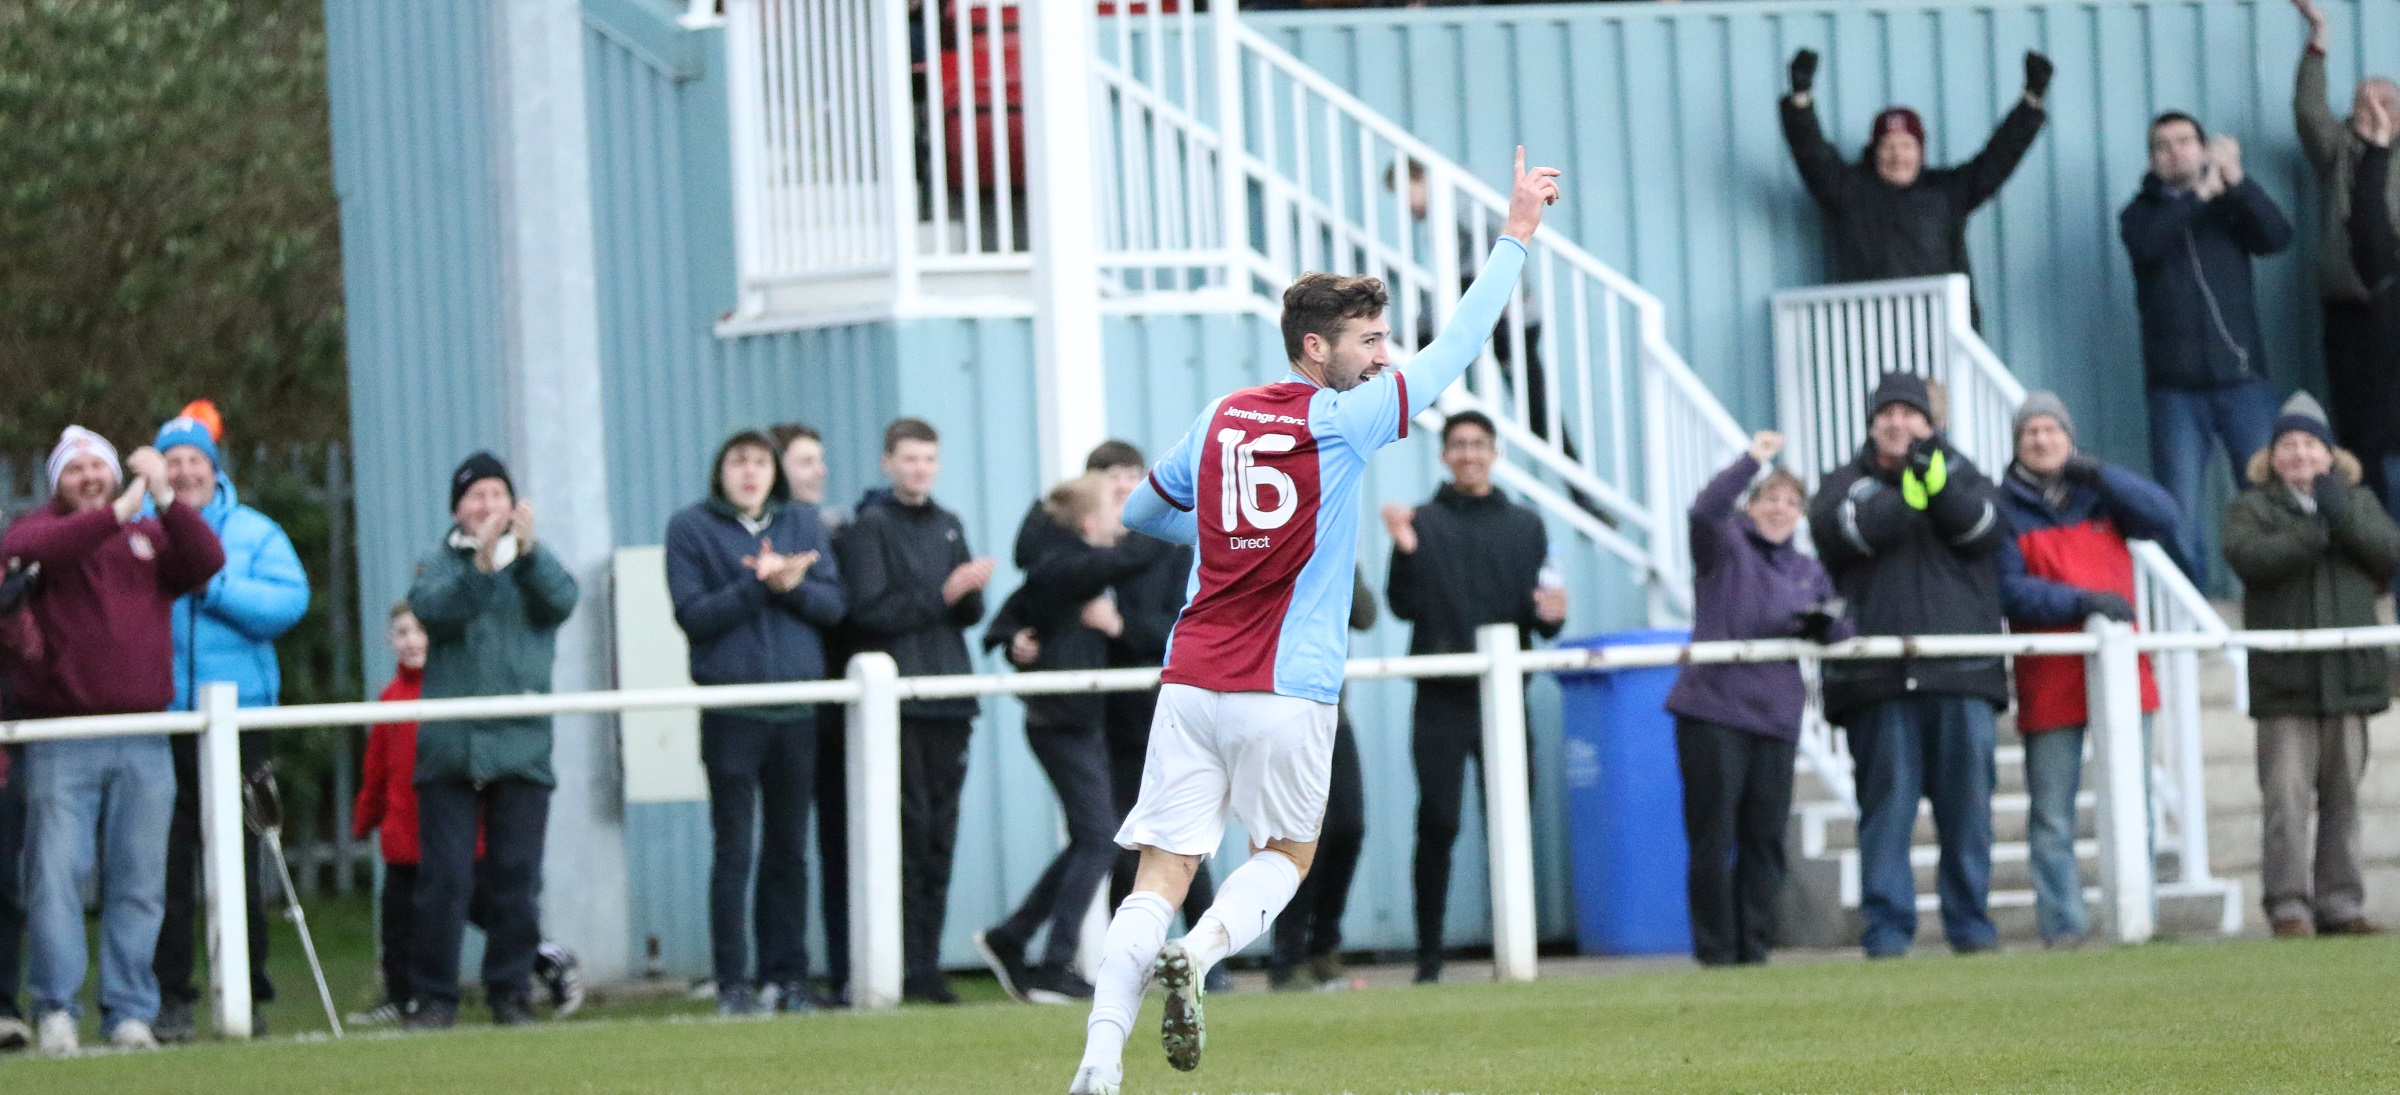 South Shields vs Shildon